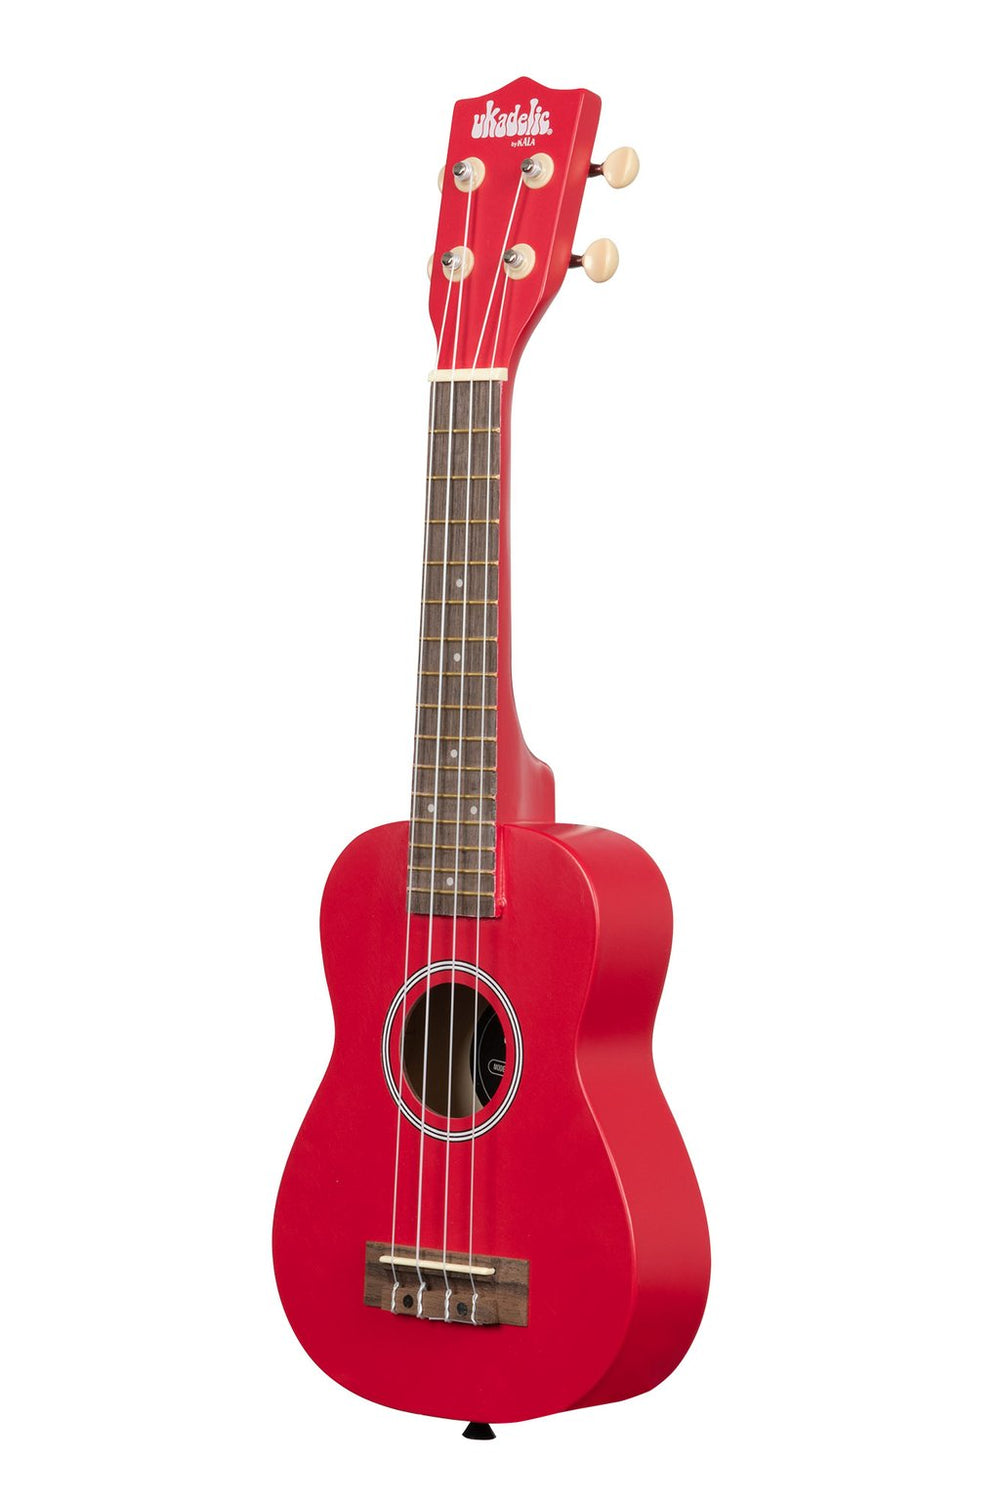 KALA Ukadelic Cherry Bomb Soprano Ukulele Pack with Tote Bag UK-CHERRYBOMB